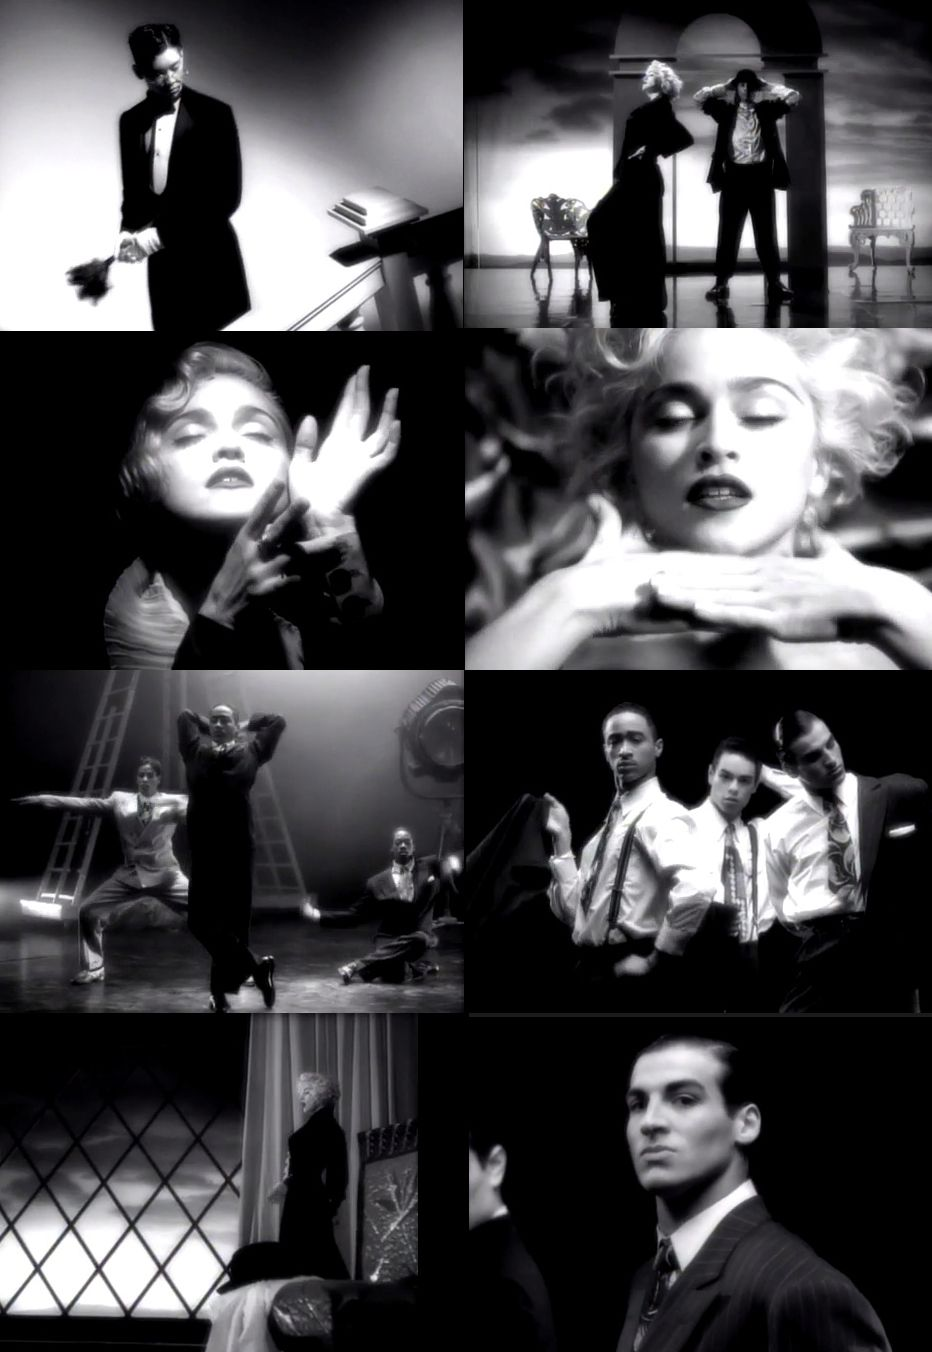 Madonna Vogue Music Video Stills Madonna Vogue Madonna Music Videos